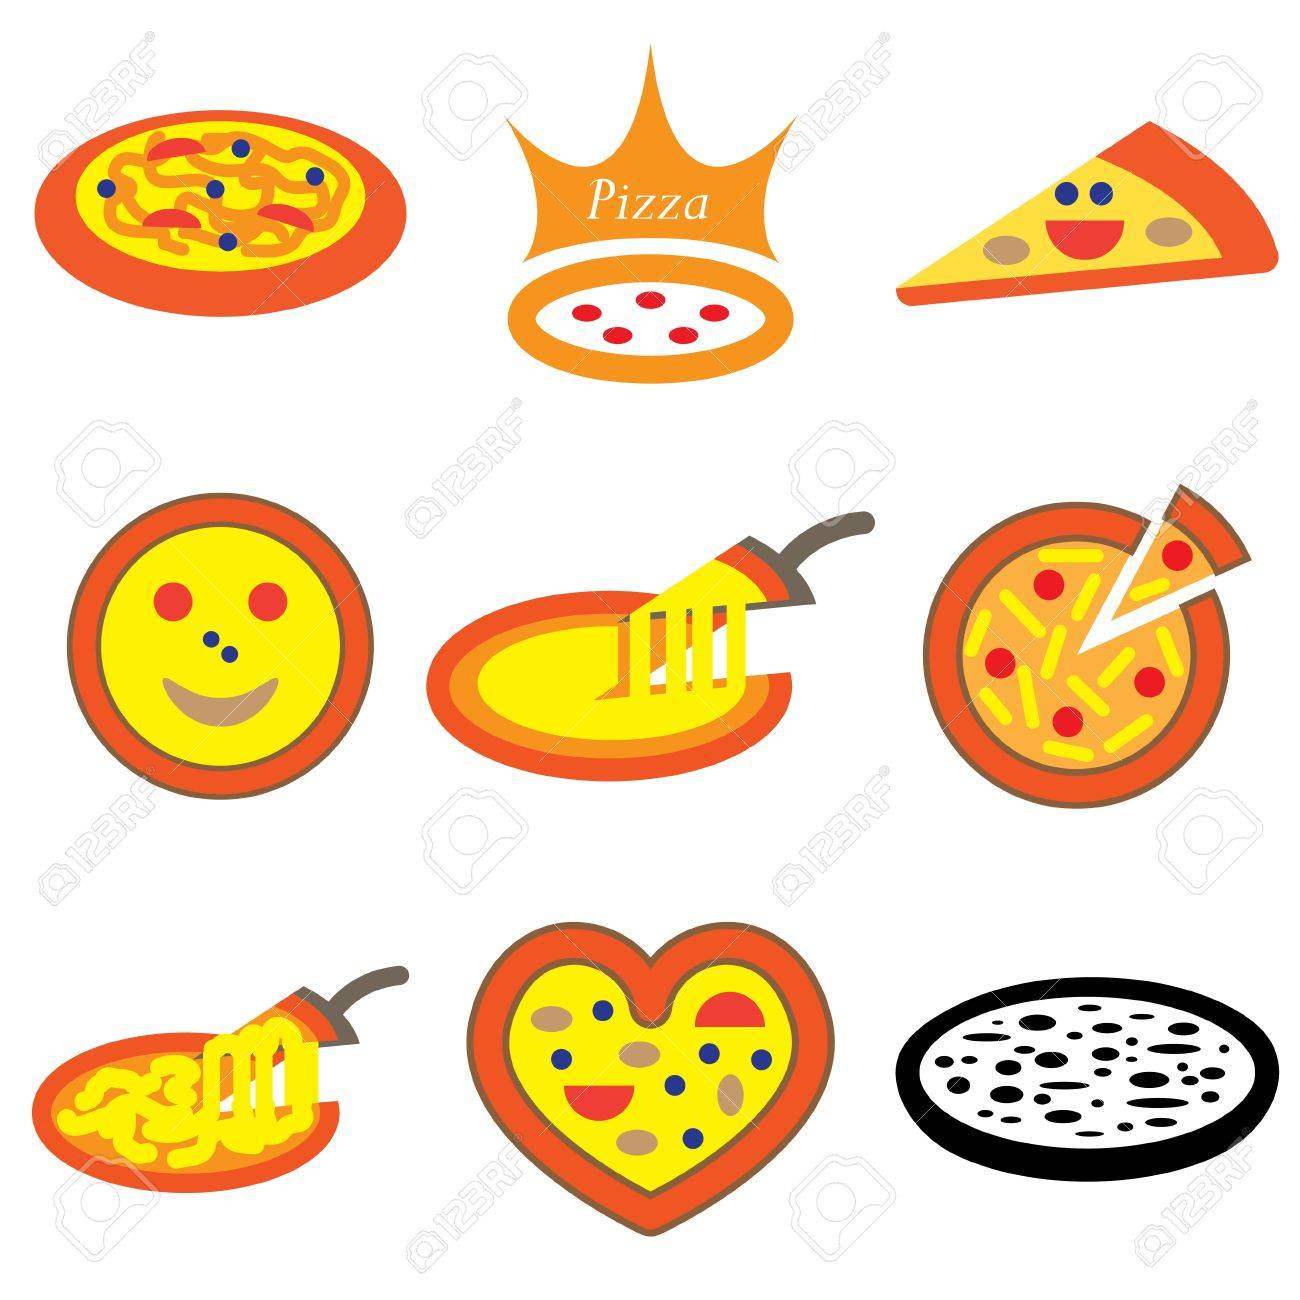 pizza hand drawn icons in vector Stock Vector - 16270878